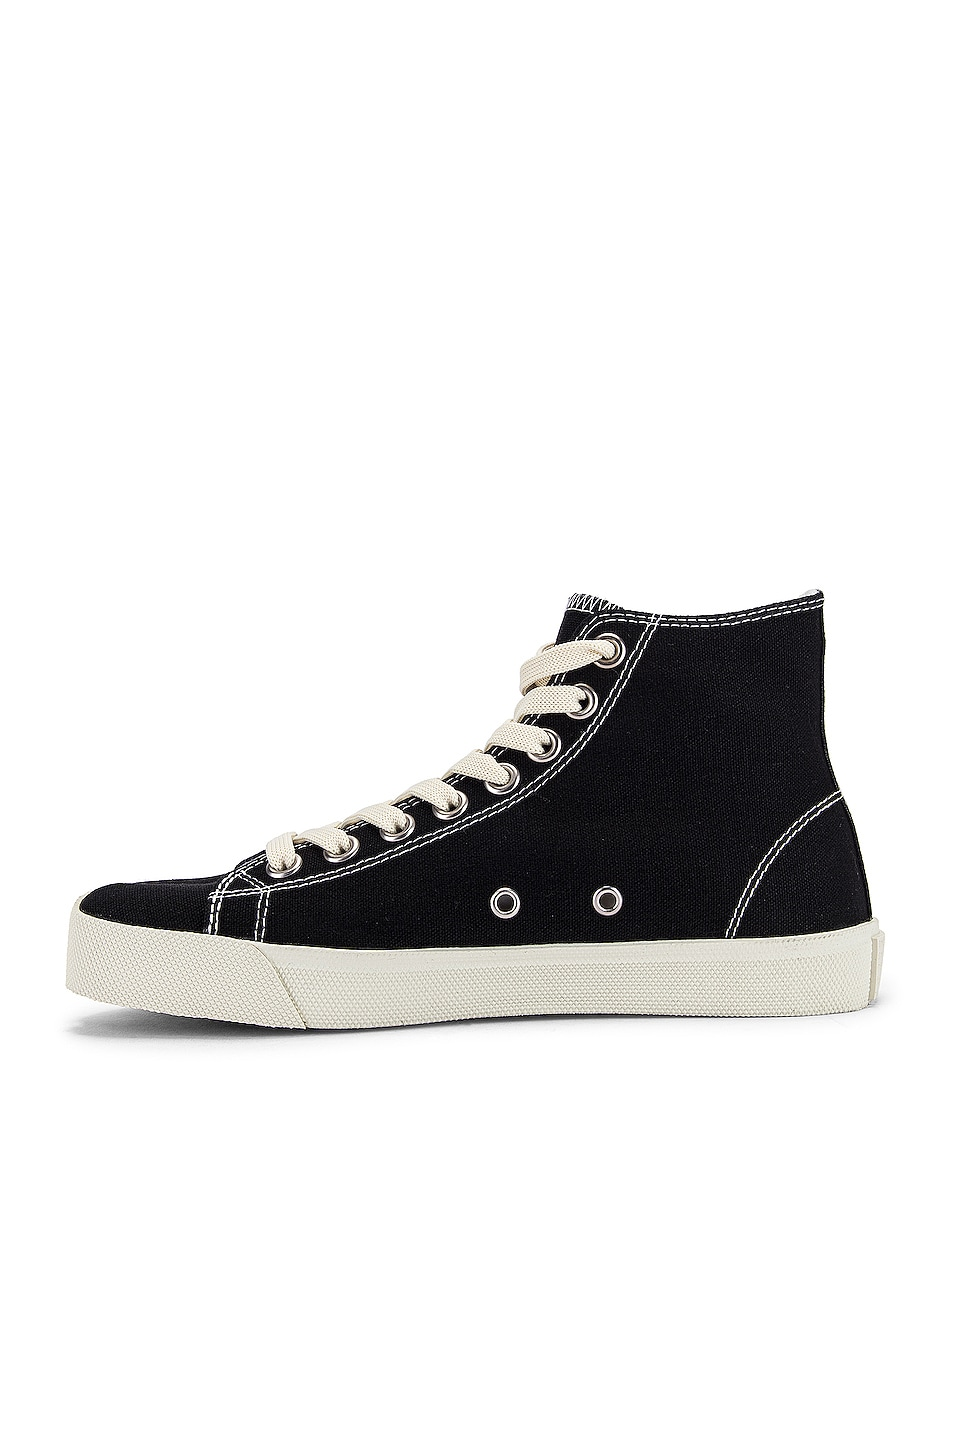 Image 5 of Maison Margiela Tabi High Top Canvas Sneakers in Black